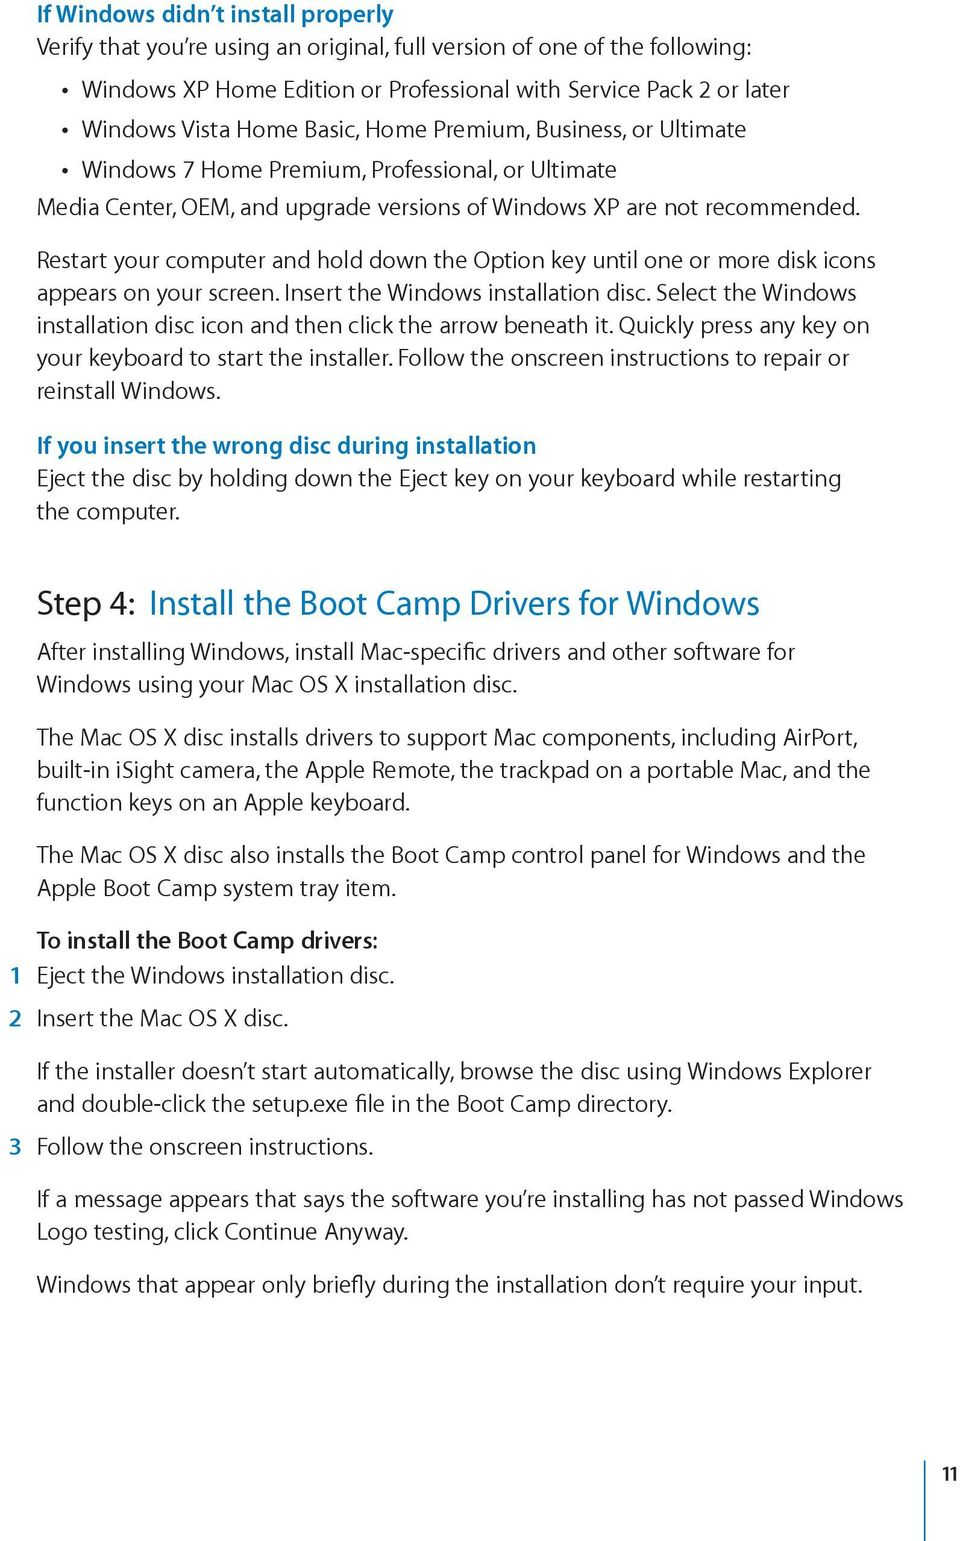 Boot Camp Installation & Setup Guide - PDF